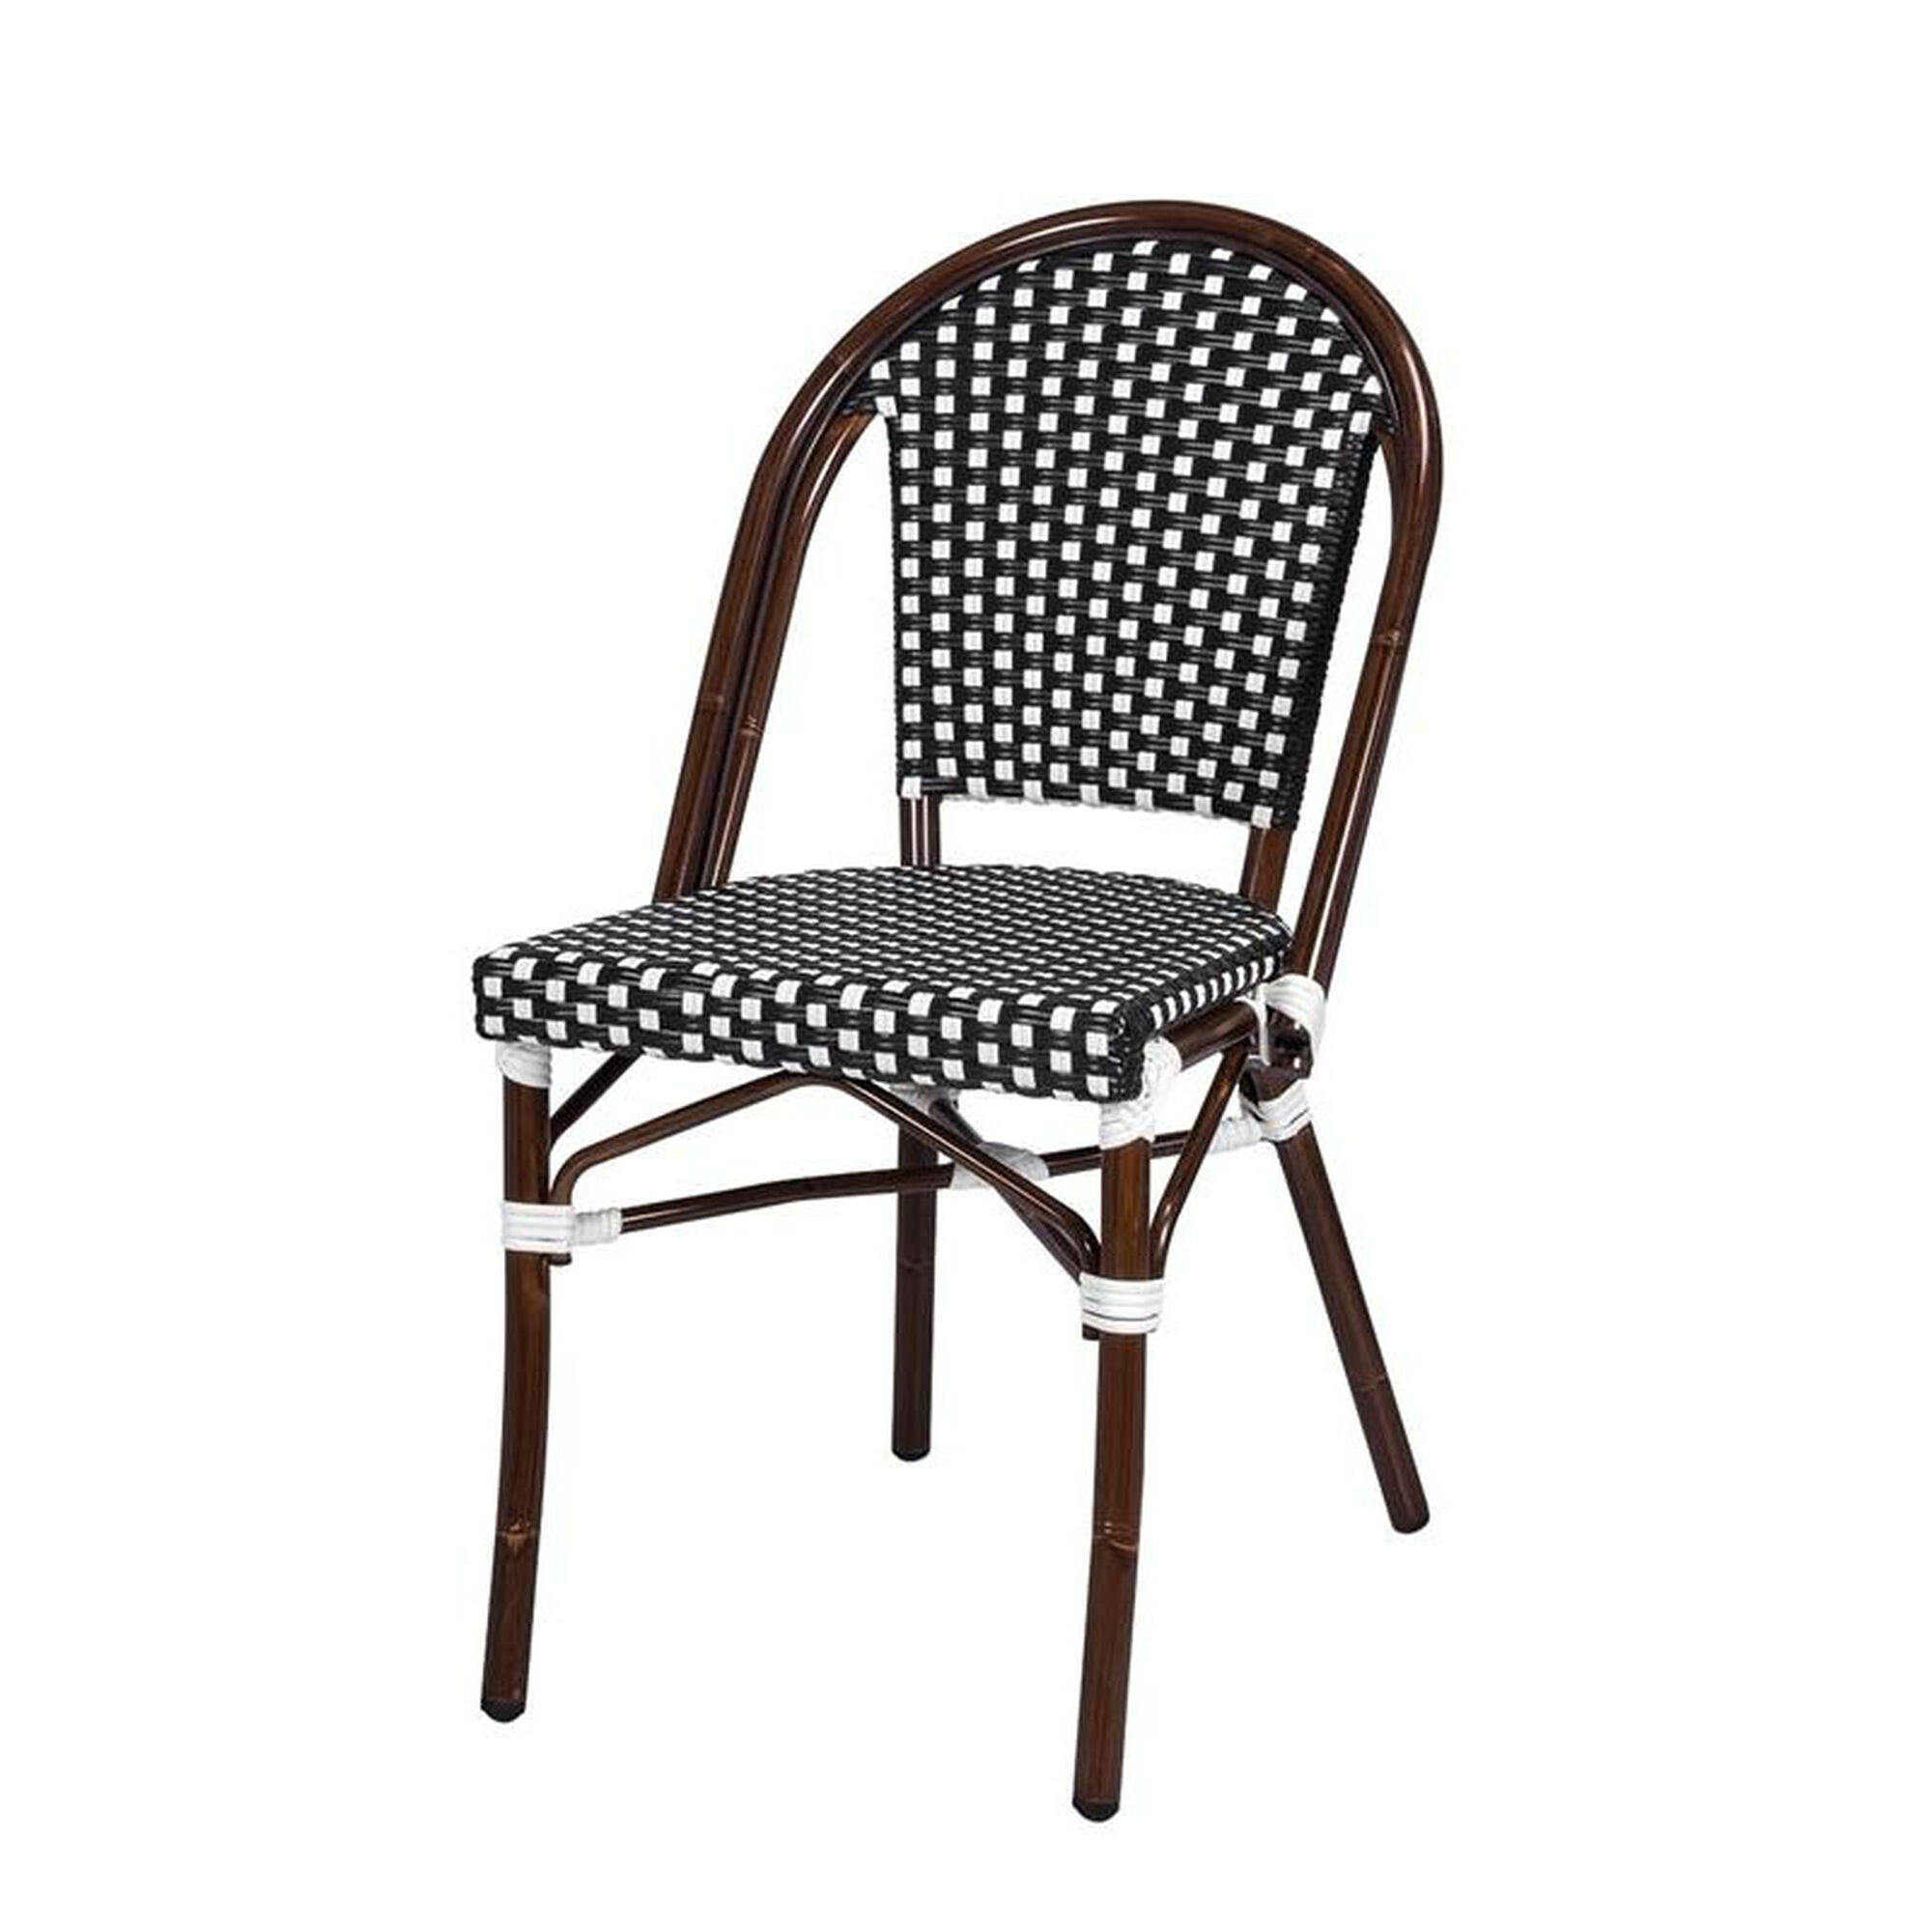 Terrific Paris Indoor Outdoor Stackable Armless Side Chair With Dark Bamboo Aluminum Frame Black And White Interior Design Ideas Clesiryabchikinfo